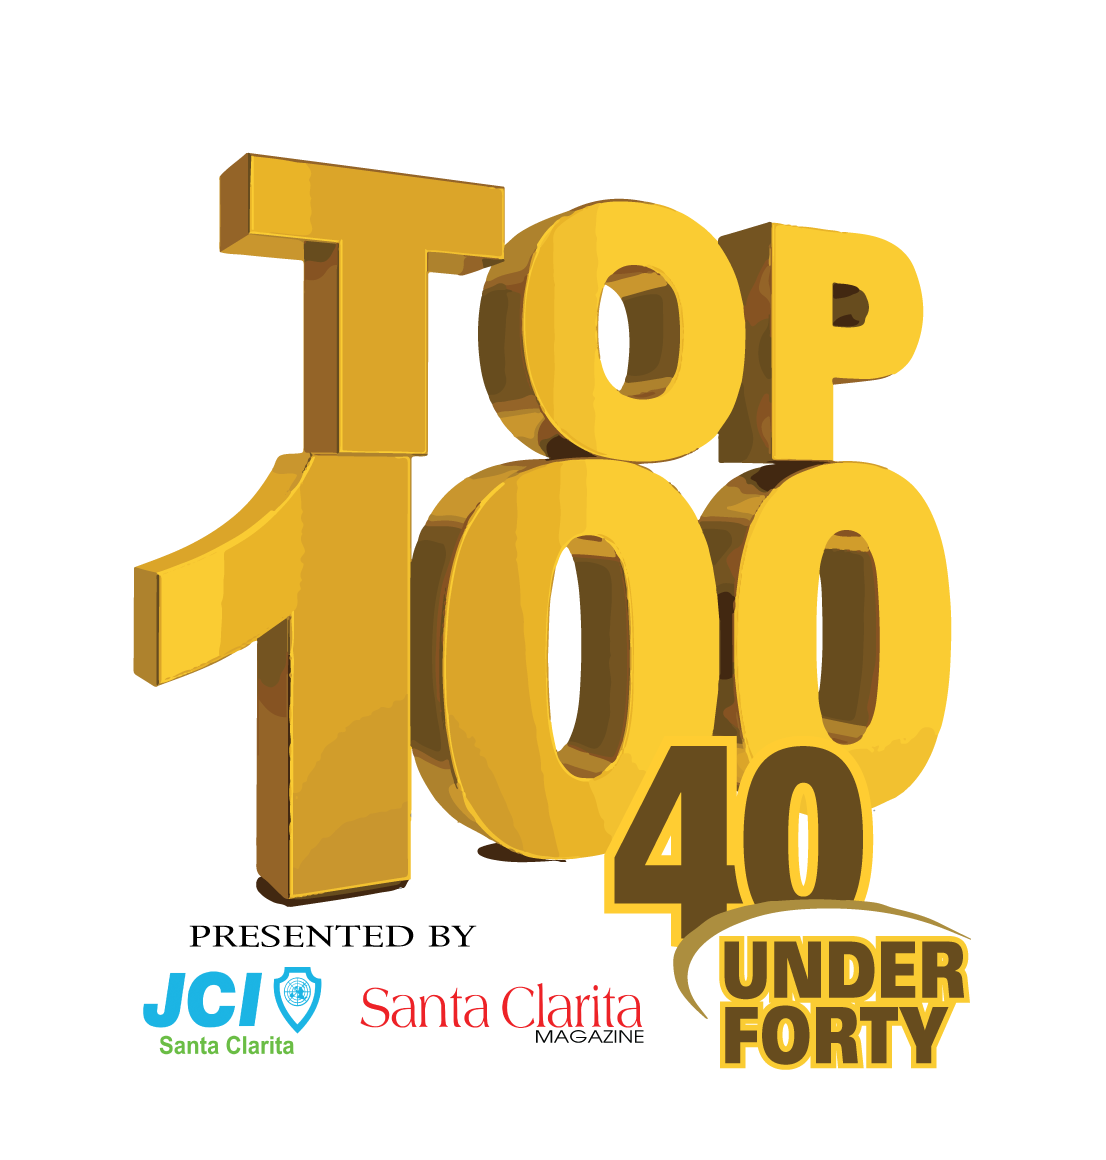 SCV 40 Under Forty TOP 100